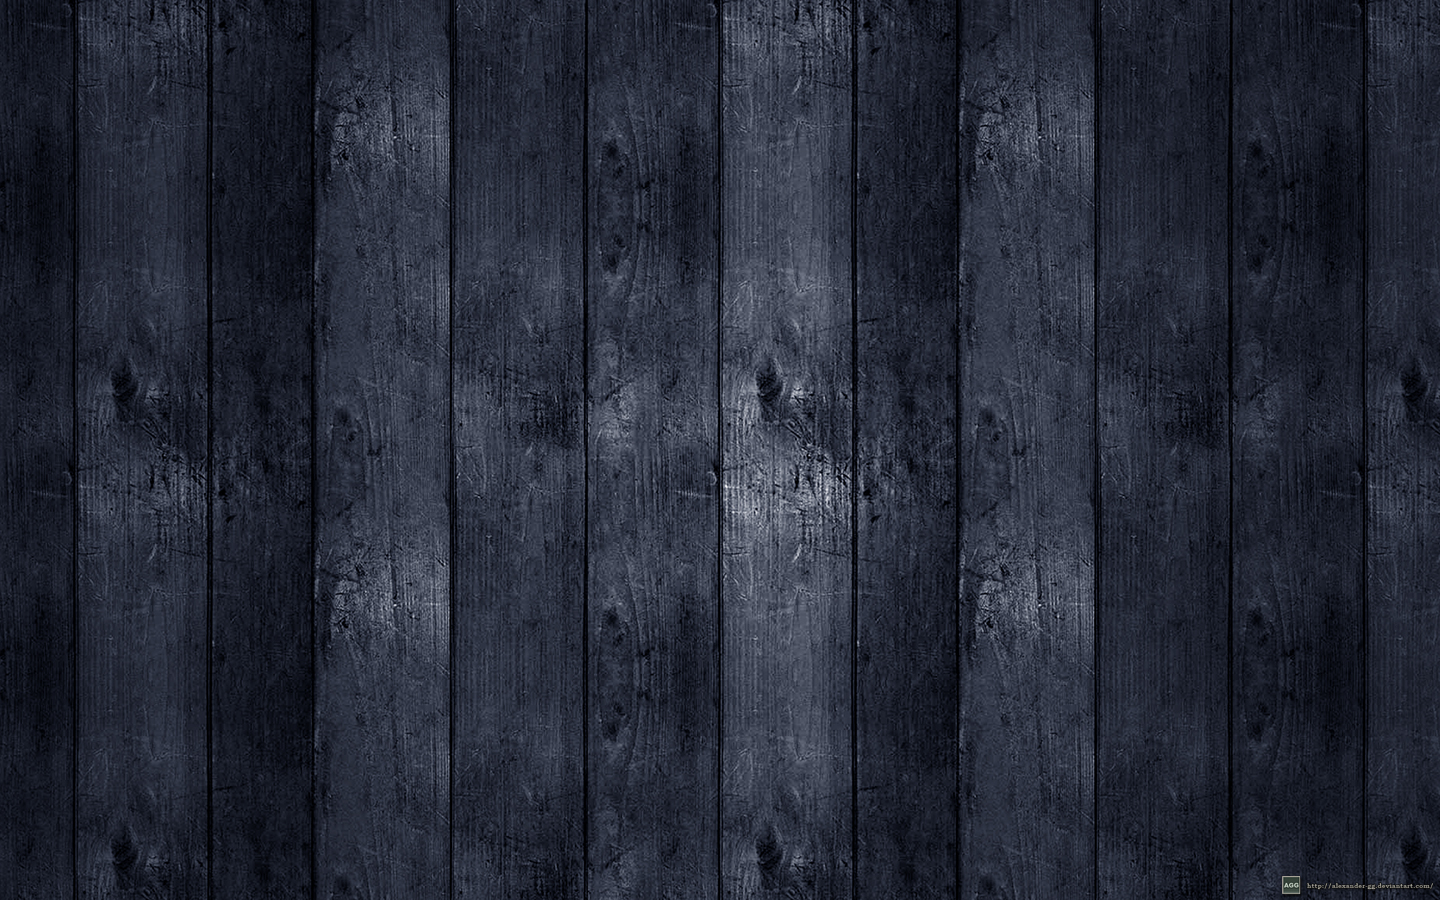 TechCredo Wood Texture Wallpaper Collection for Android 1440x900